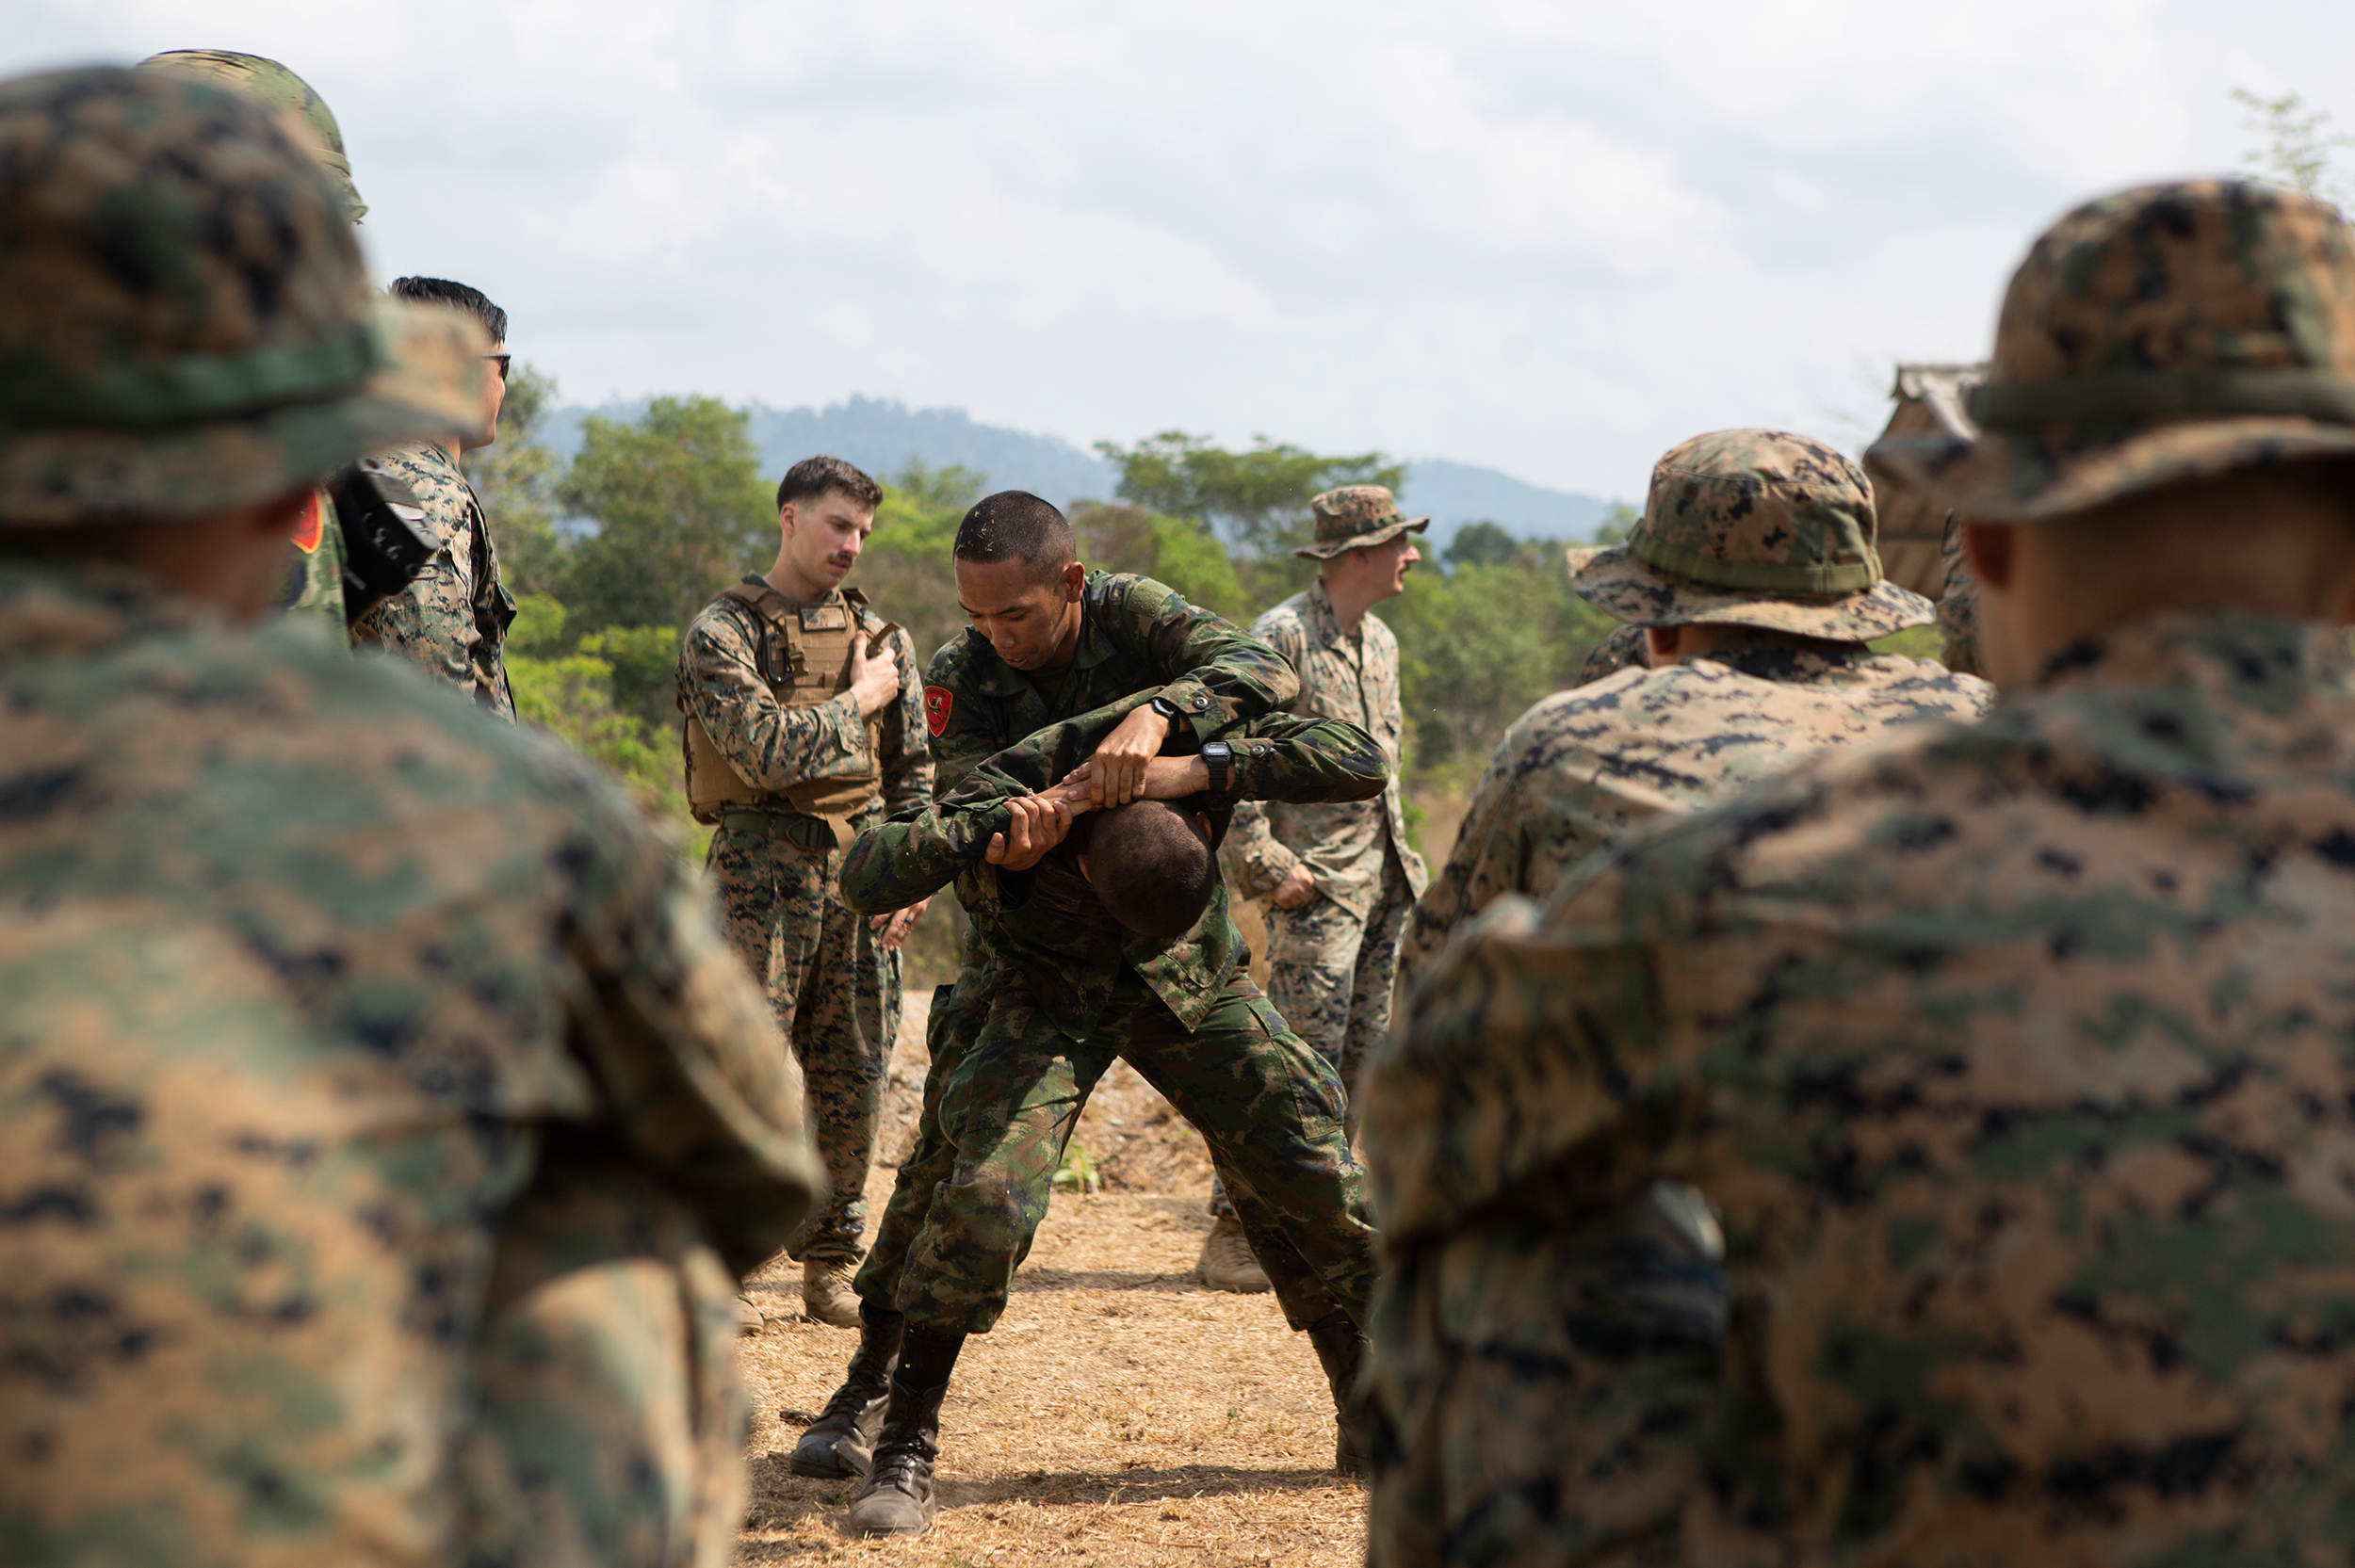 Royal Thai Marines practice detaining a simulated enemy while participating in urban operations training during exercise Cobra Gold 2020 at Ban Chan Khrem, Chanthaburi, Kingdom of Thailand, March 3, 2020. (Lance Cpl. Hannah Hall/Marine Corps)